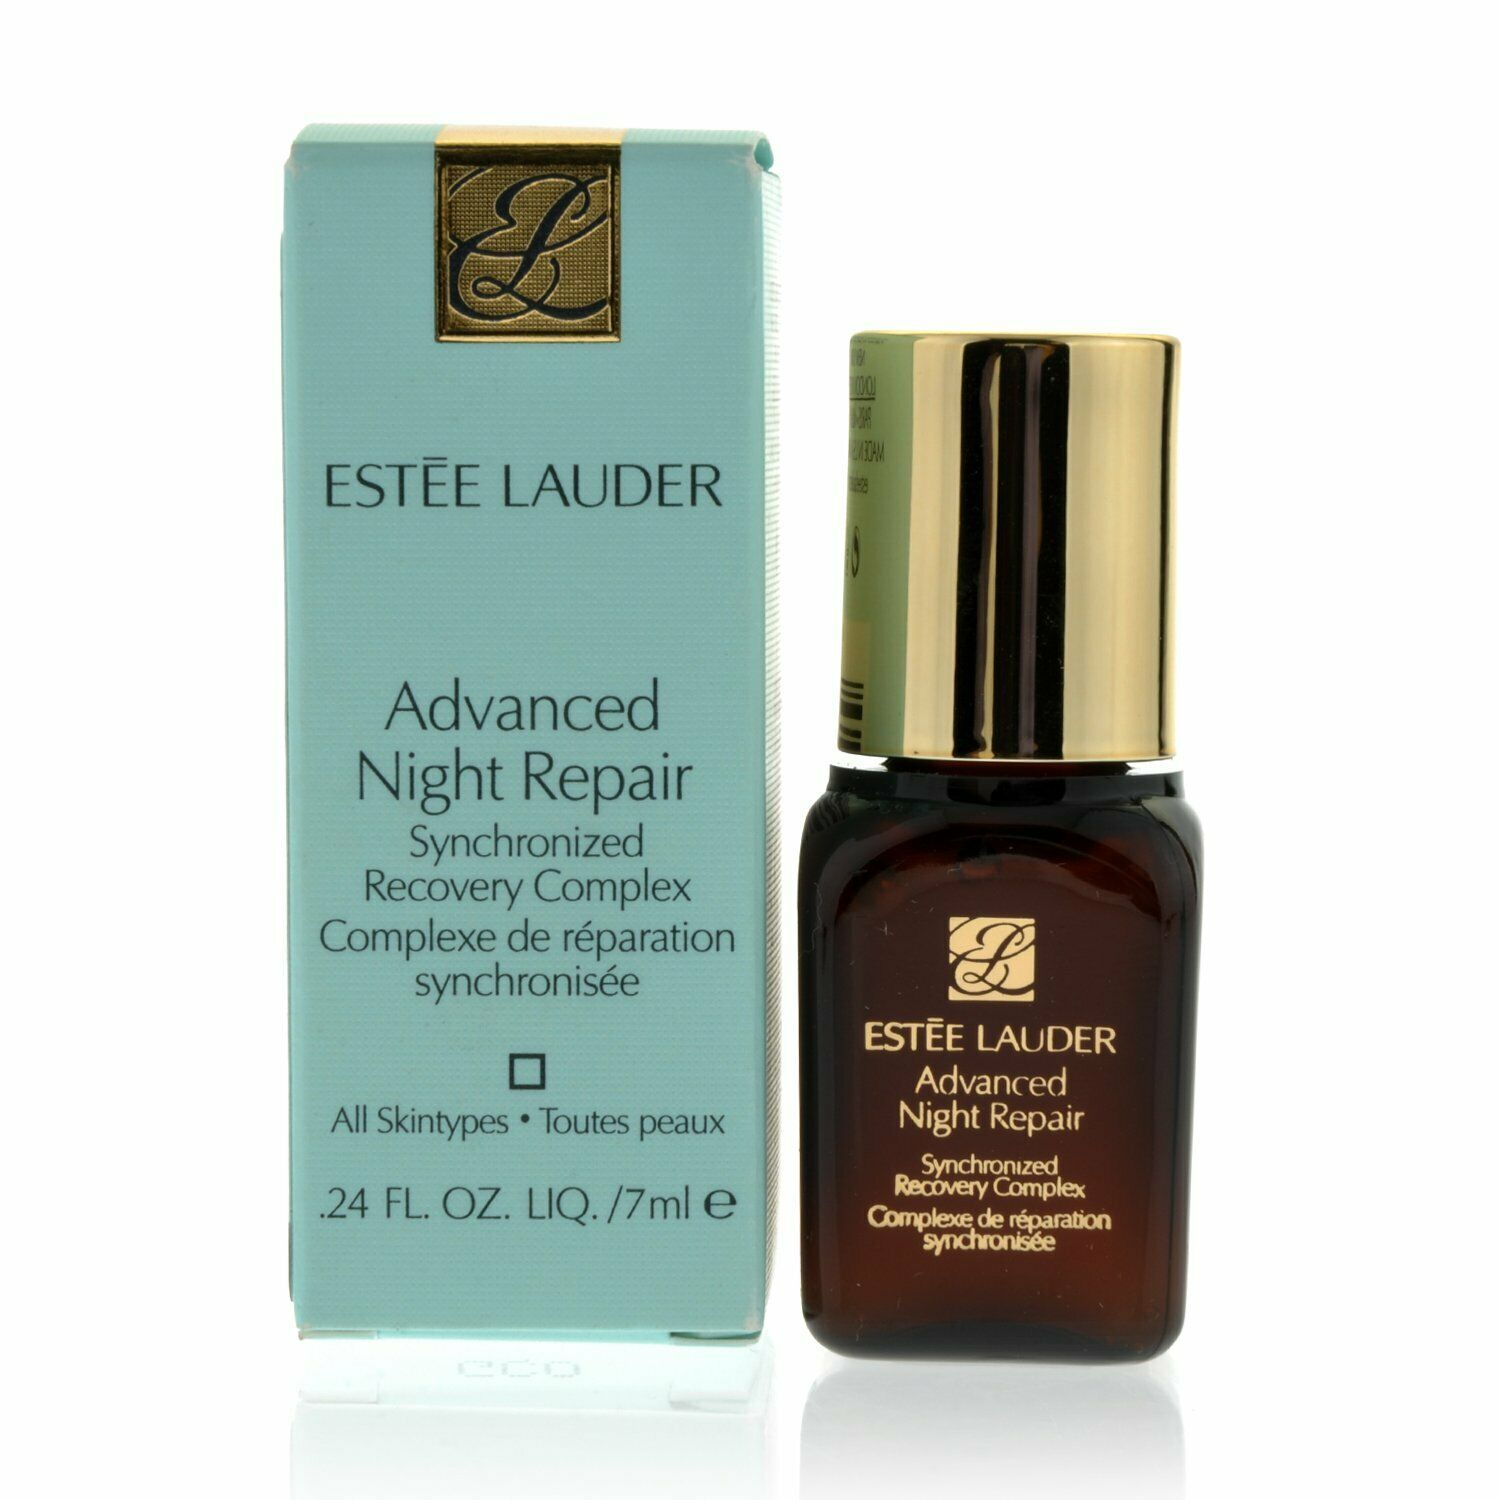 ESTEE LAUDER Advanced Night Repair Synchronized Complex II .24oz 7ml NeW in BoX - $14.50